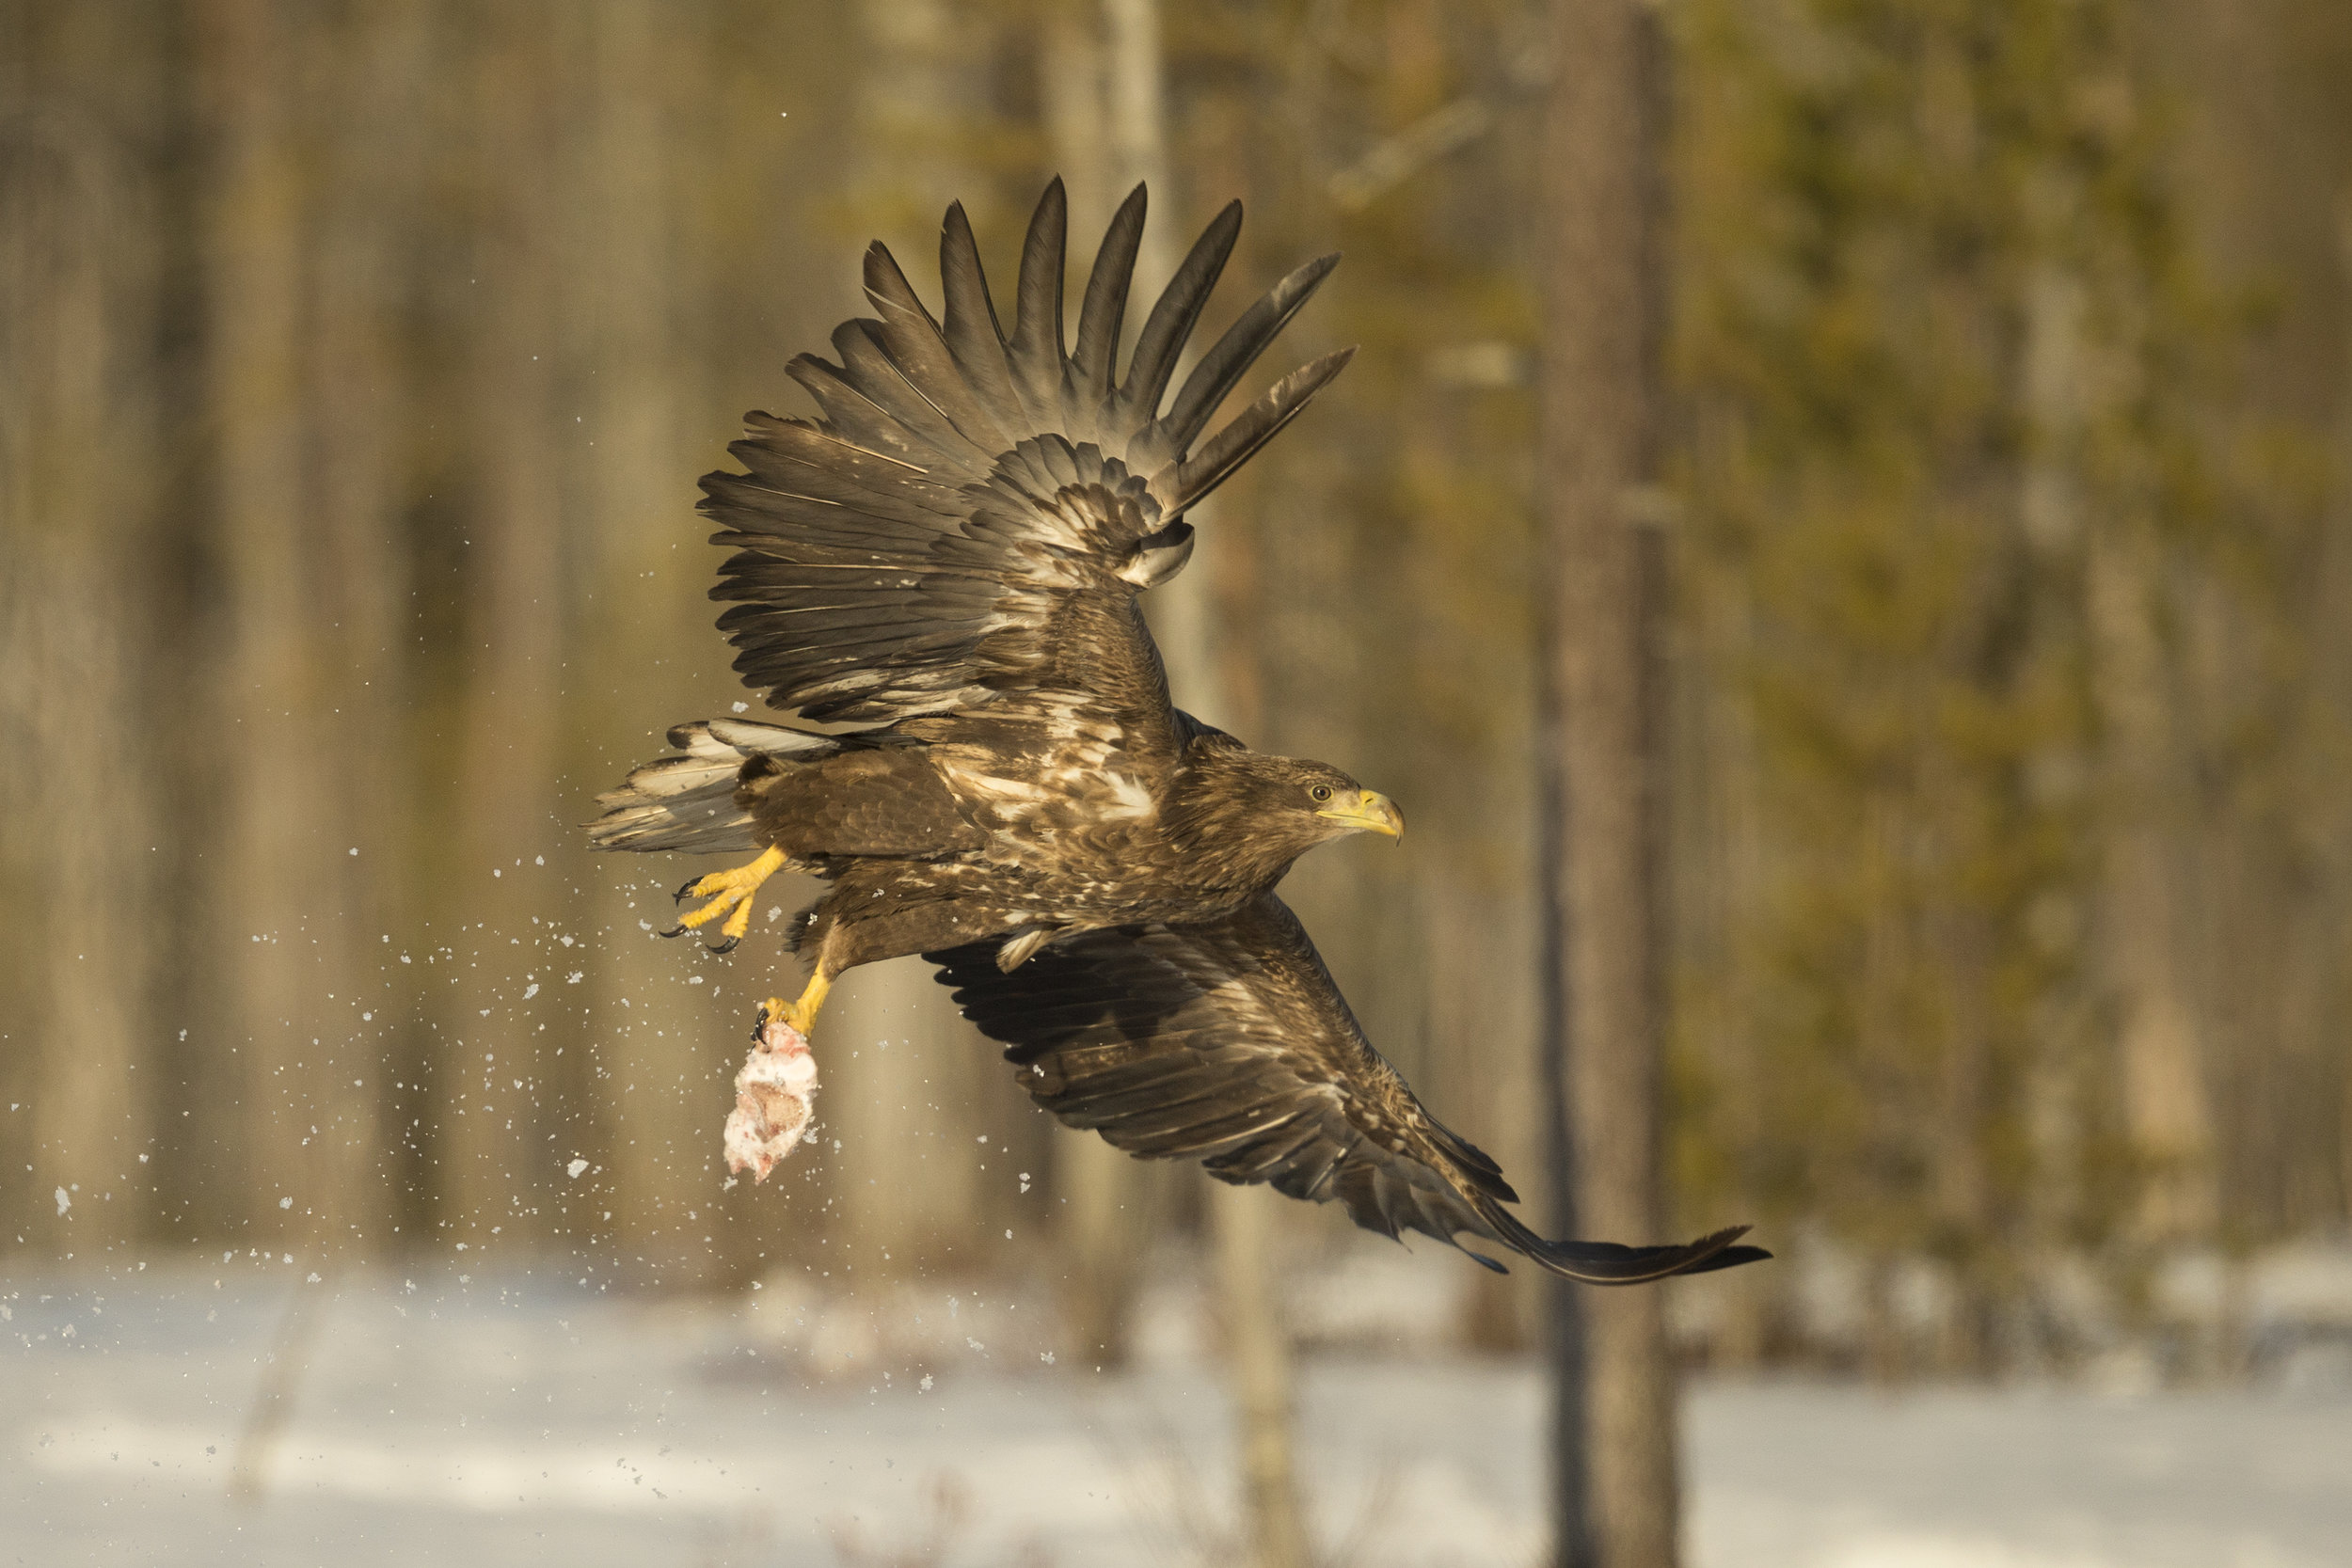 A White-Tailed Eagle takes off from the frozen lake surface with a piece of meat.